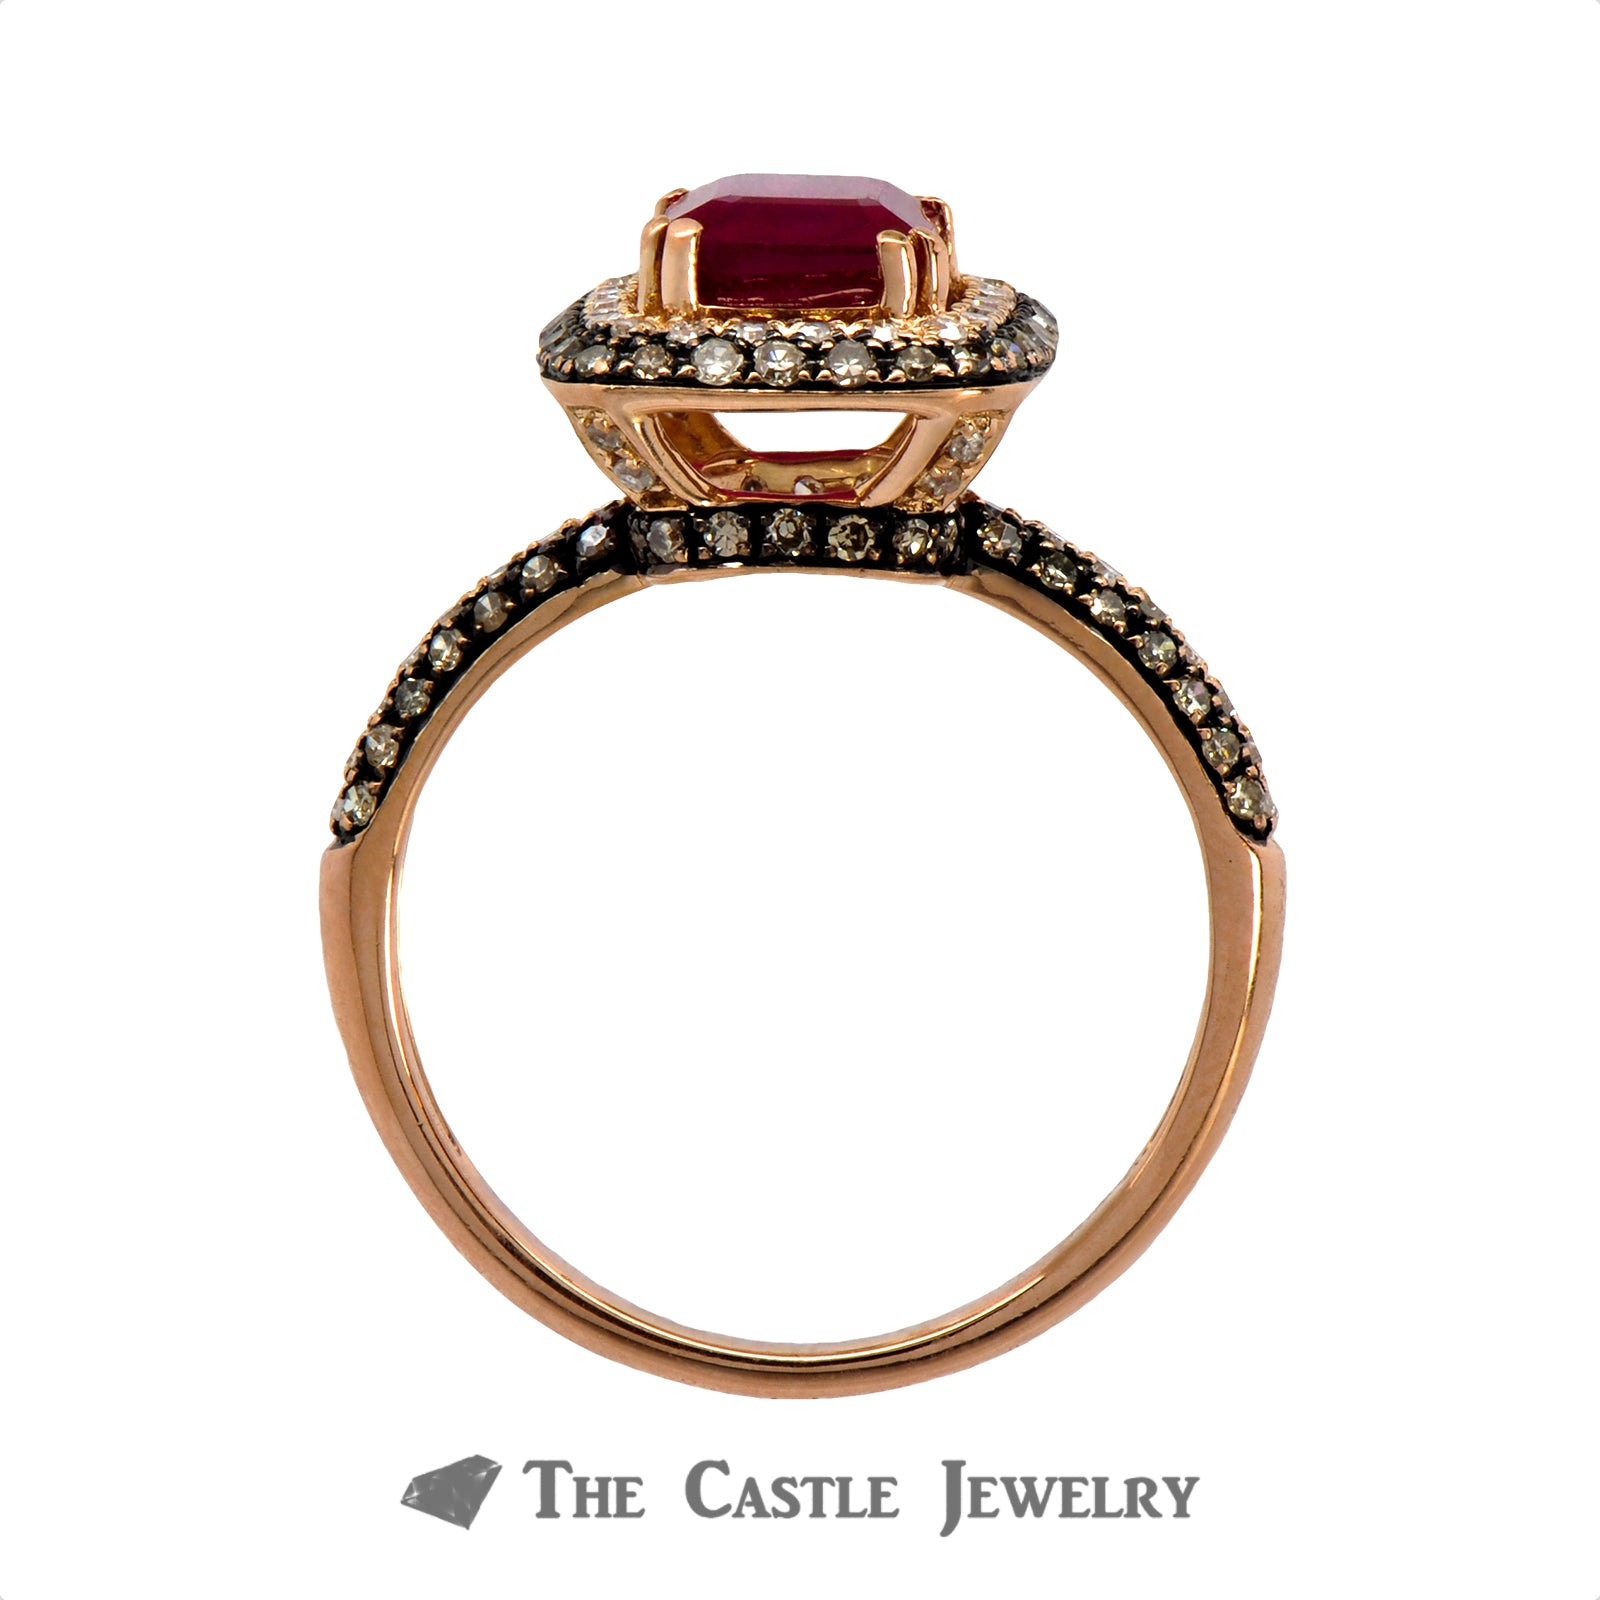 Effy Emerald Cut Ruby Ring with White and Chocolate Diamonds in 14k Rose Gold-1